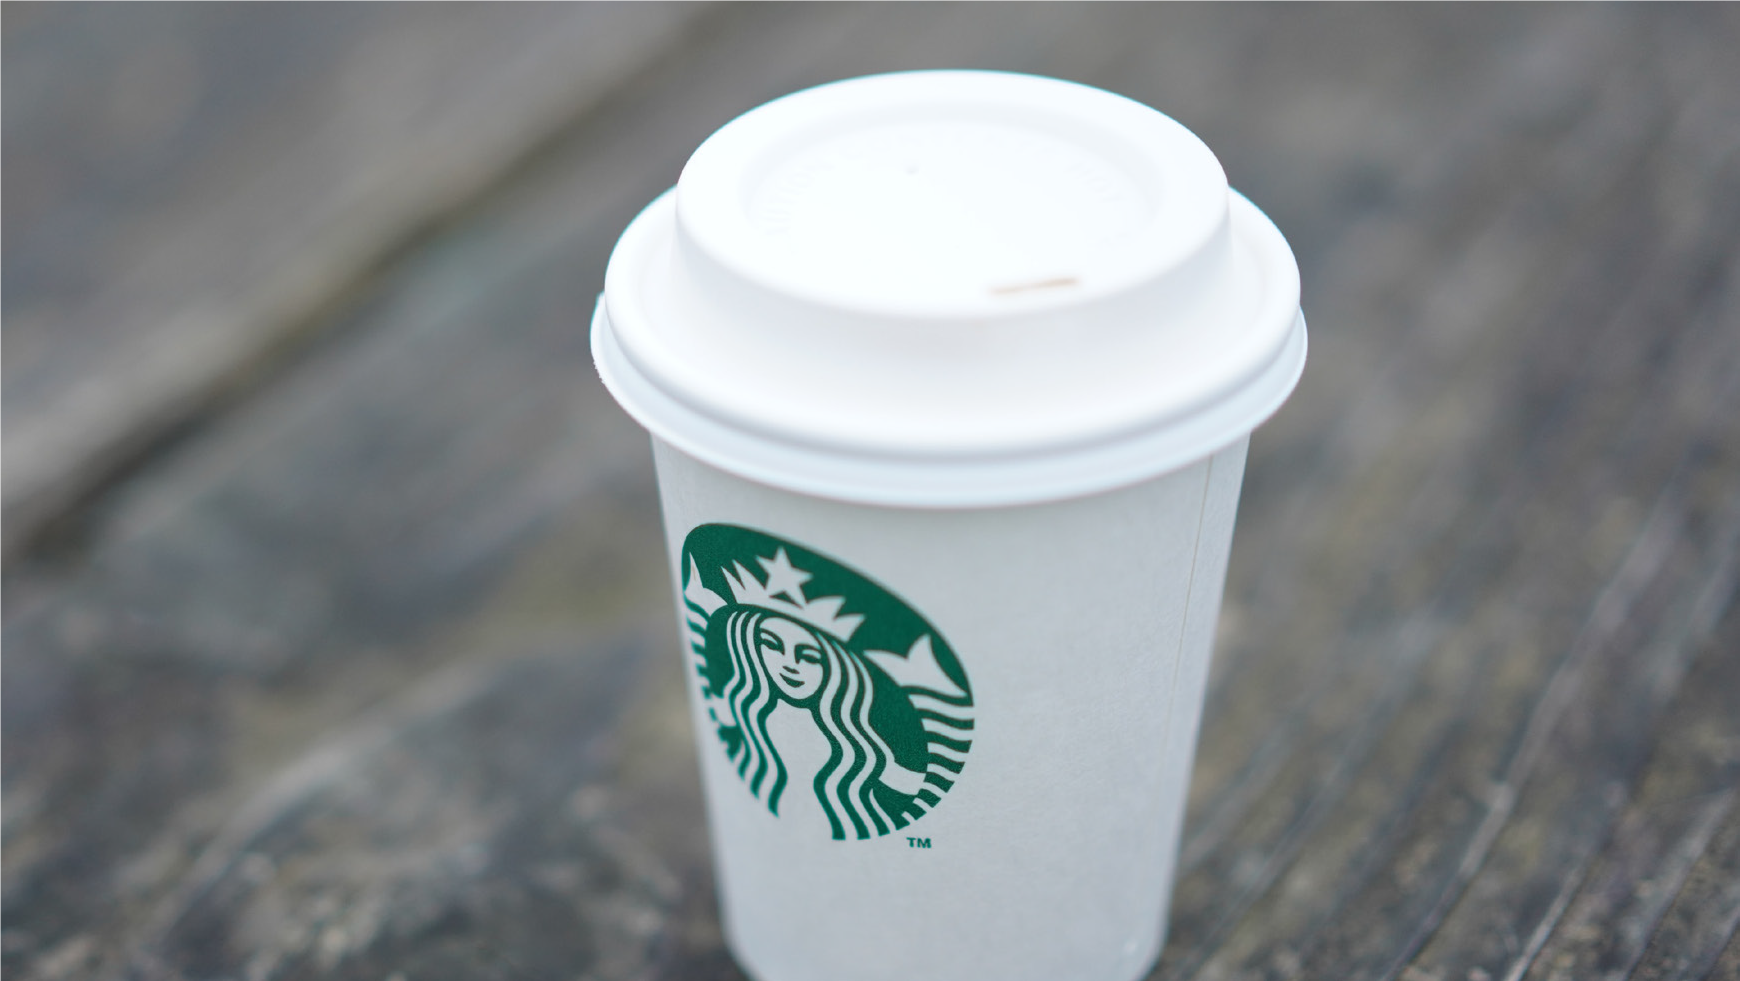 starbucks disposable coffee cup